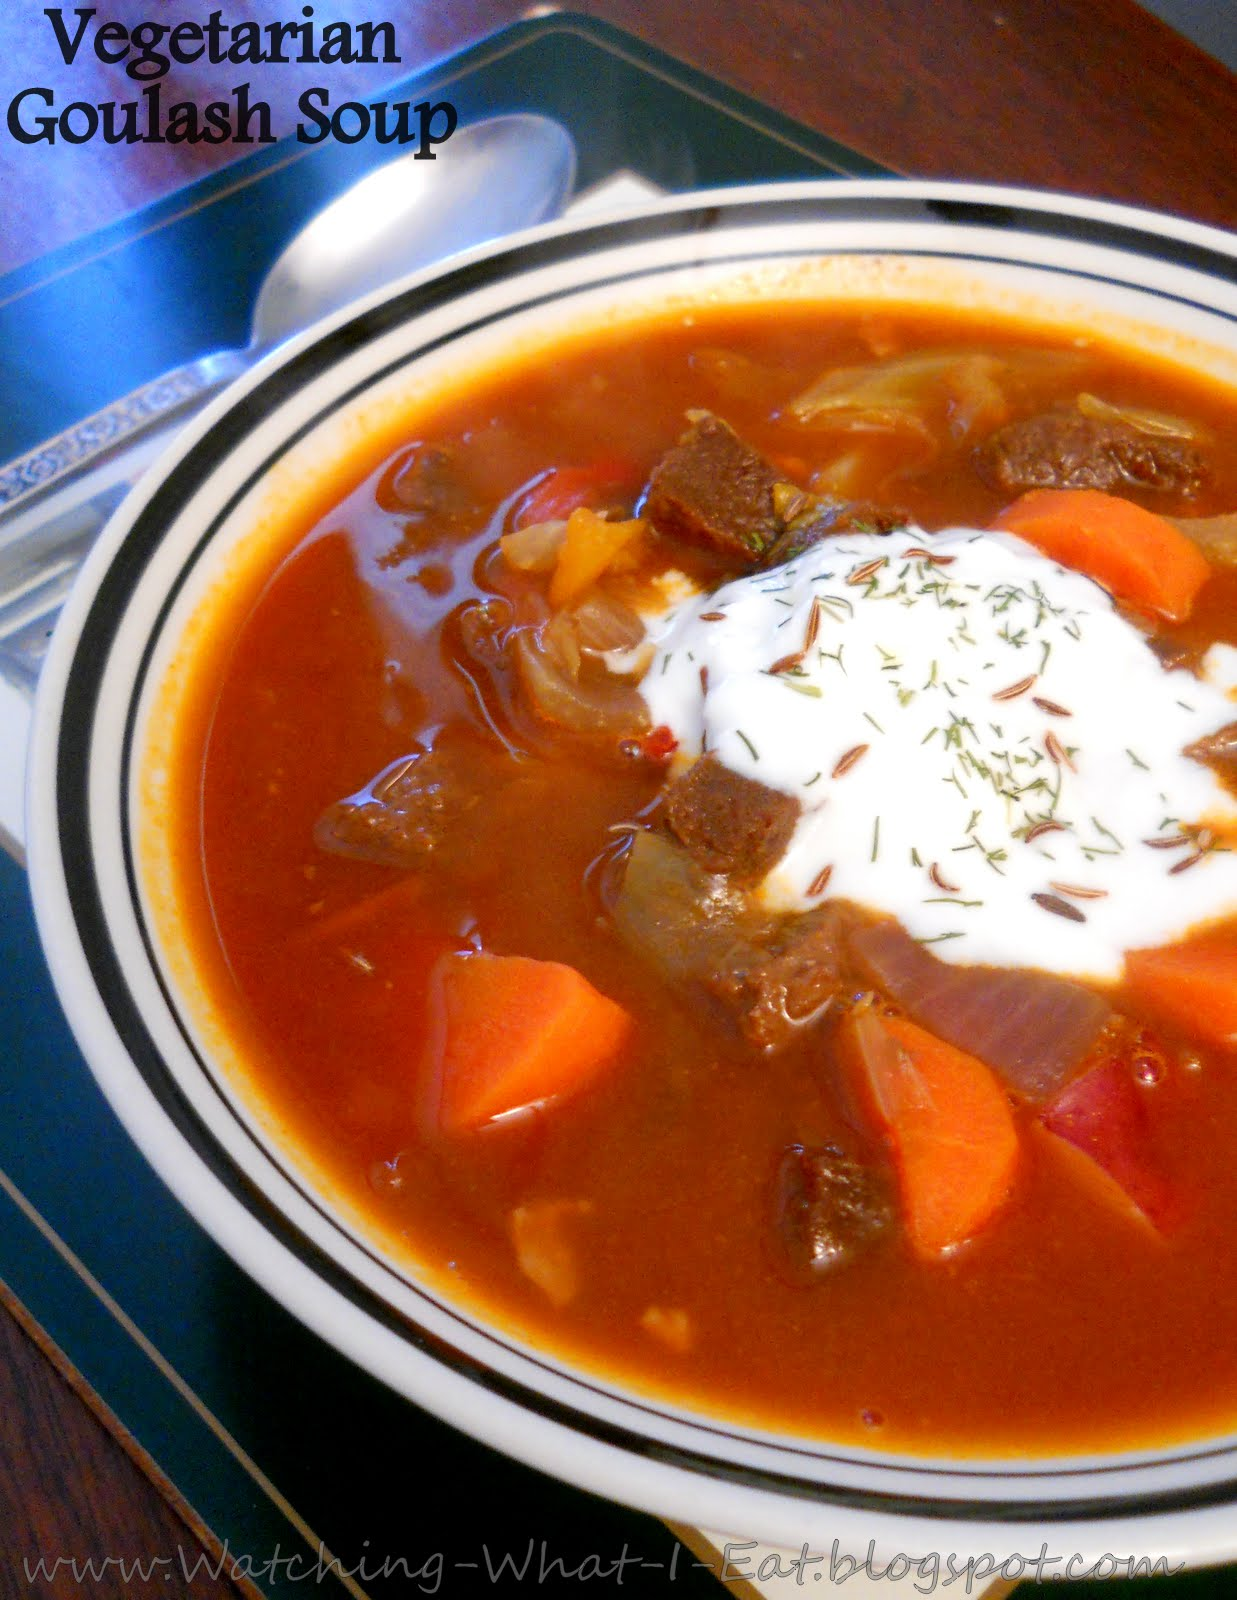 Watching What I Eat: Vegetarian Goulash Soup ~ Meatless Monday